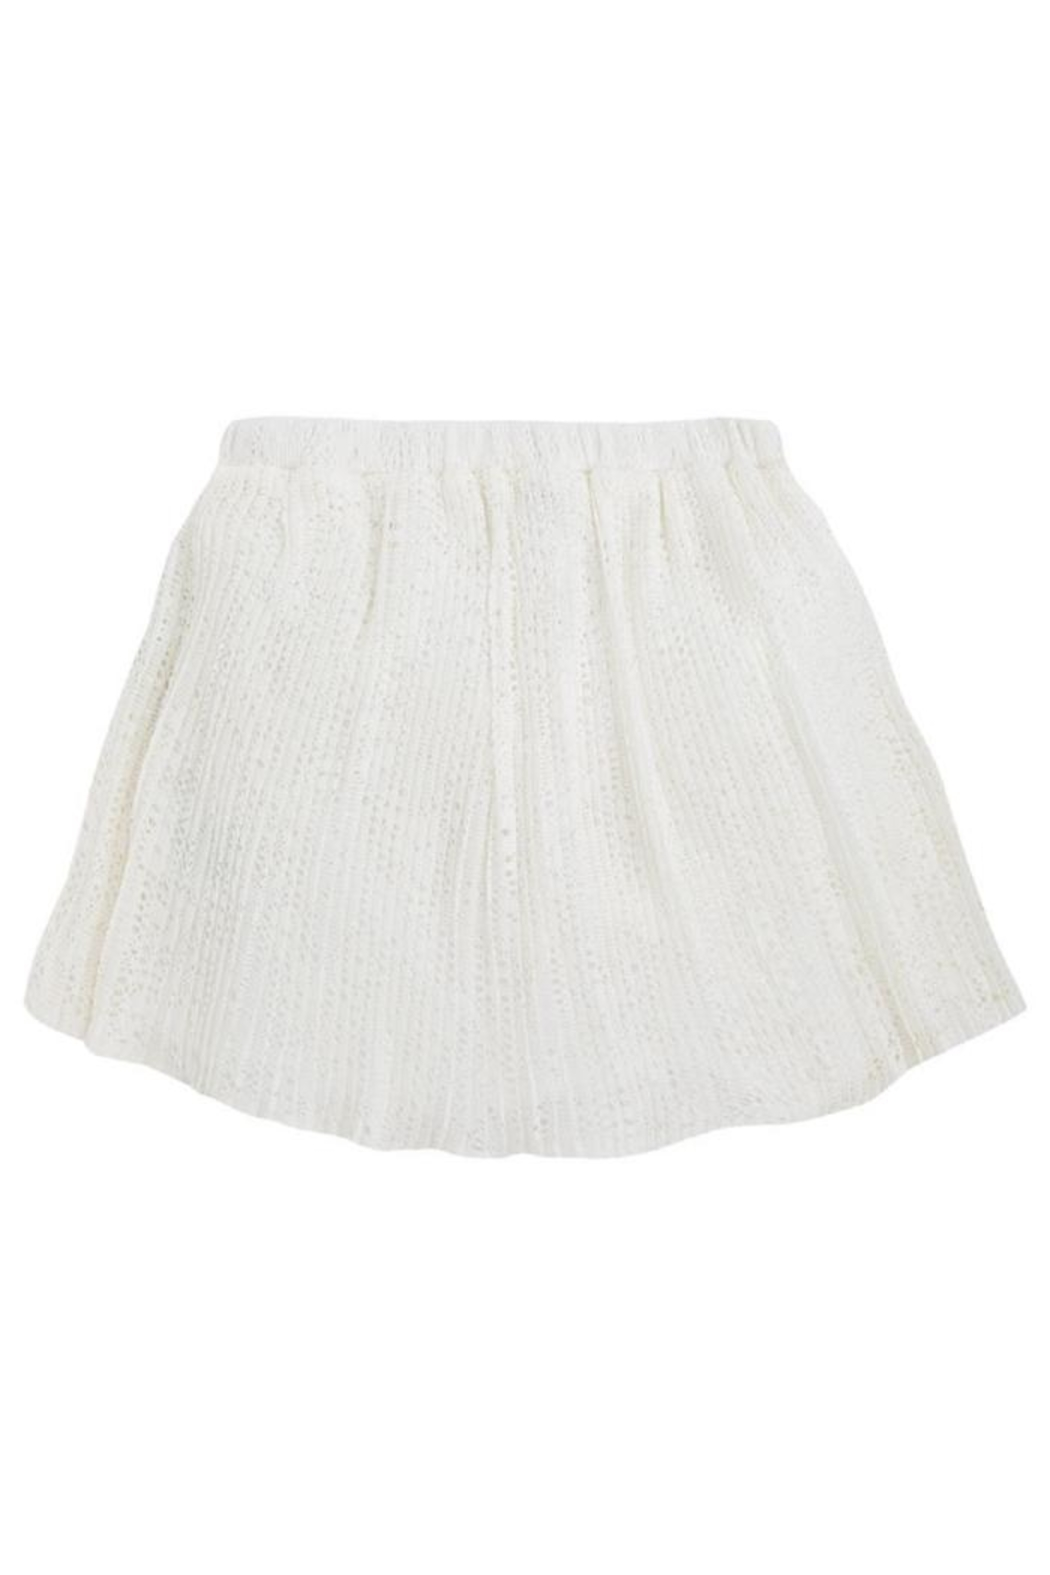 Mayoral Crochet Pleat Skirt - Main Image